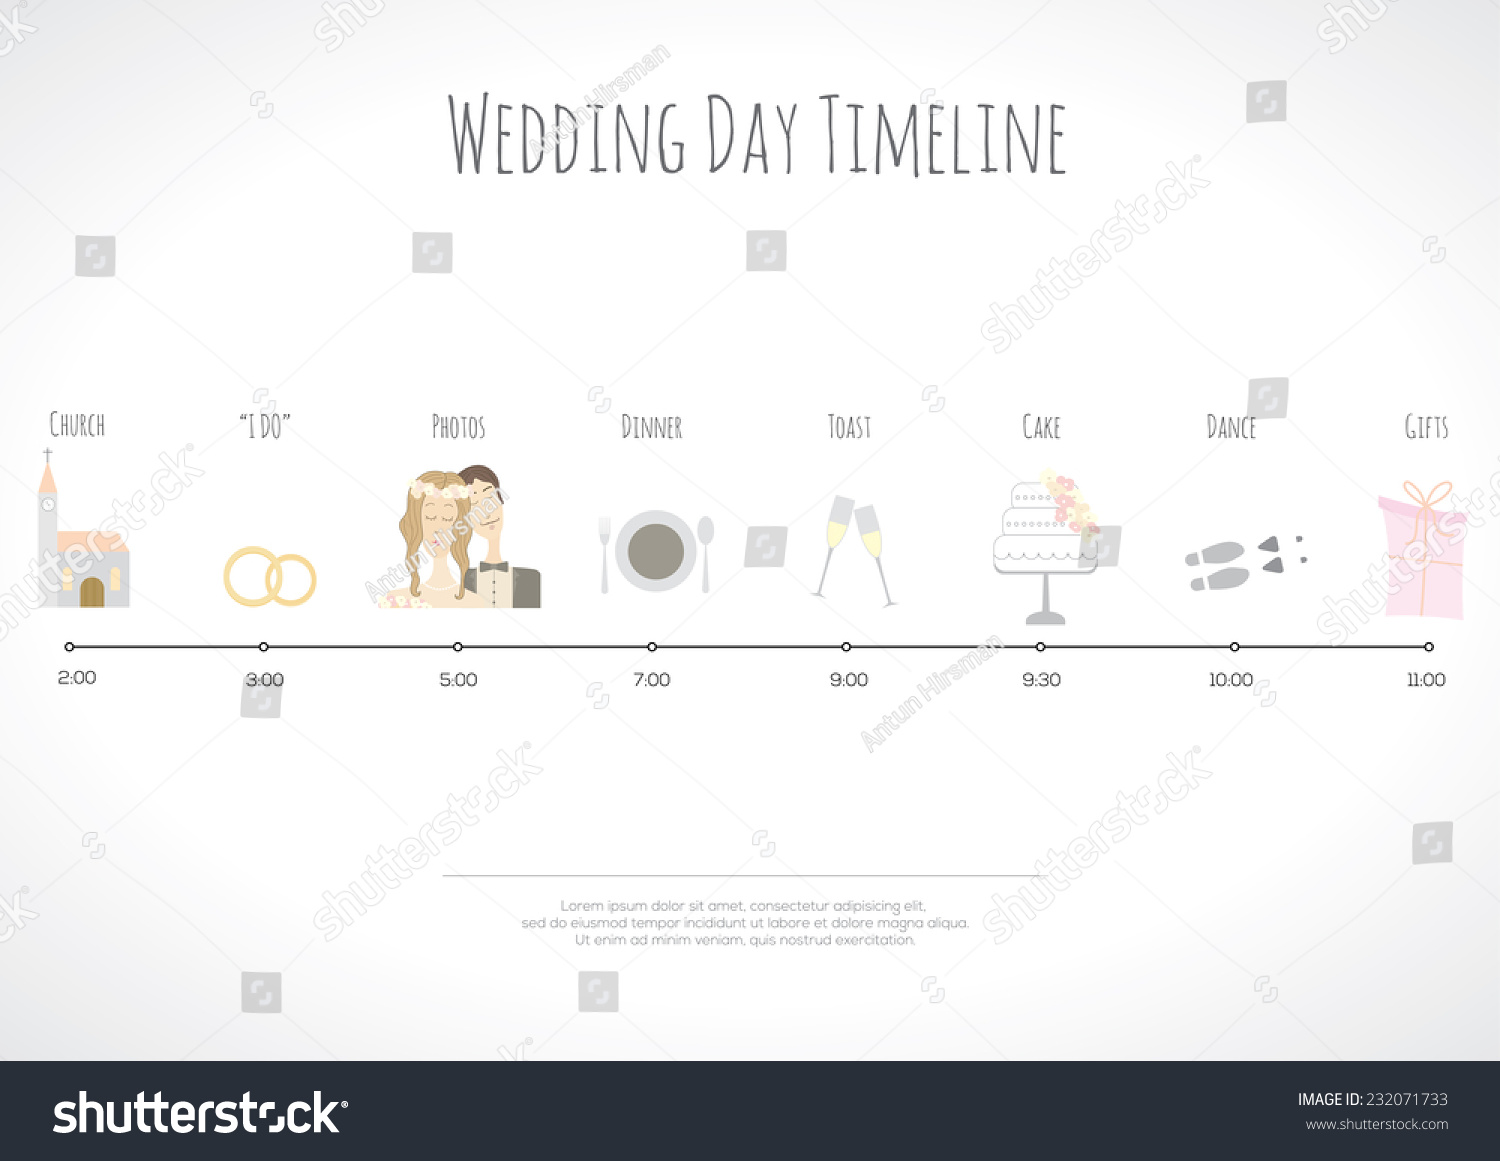 clipart wedding timeline free - photo #14